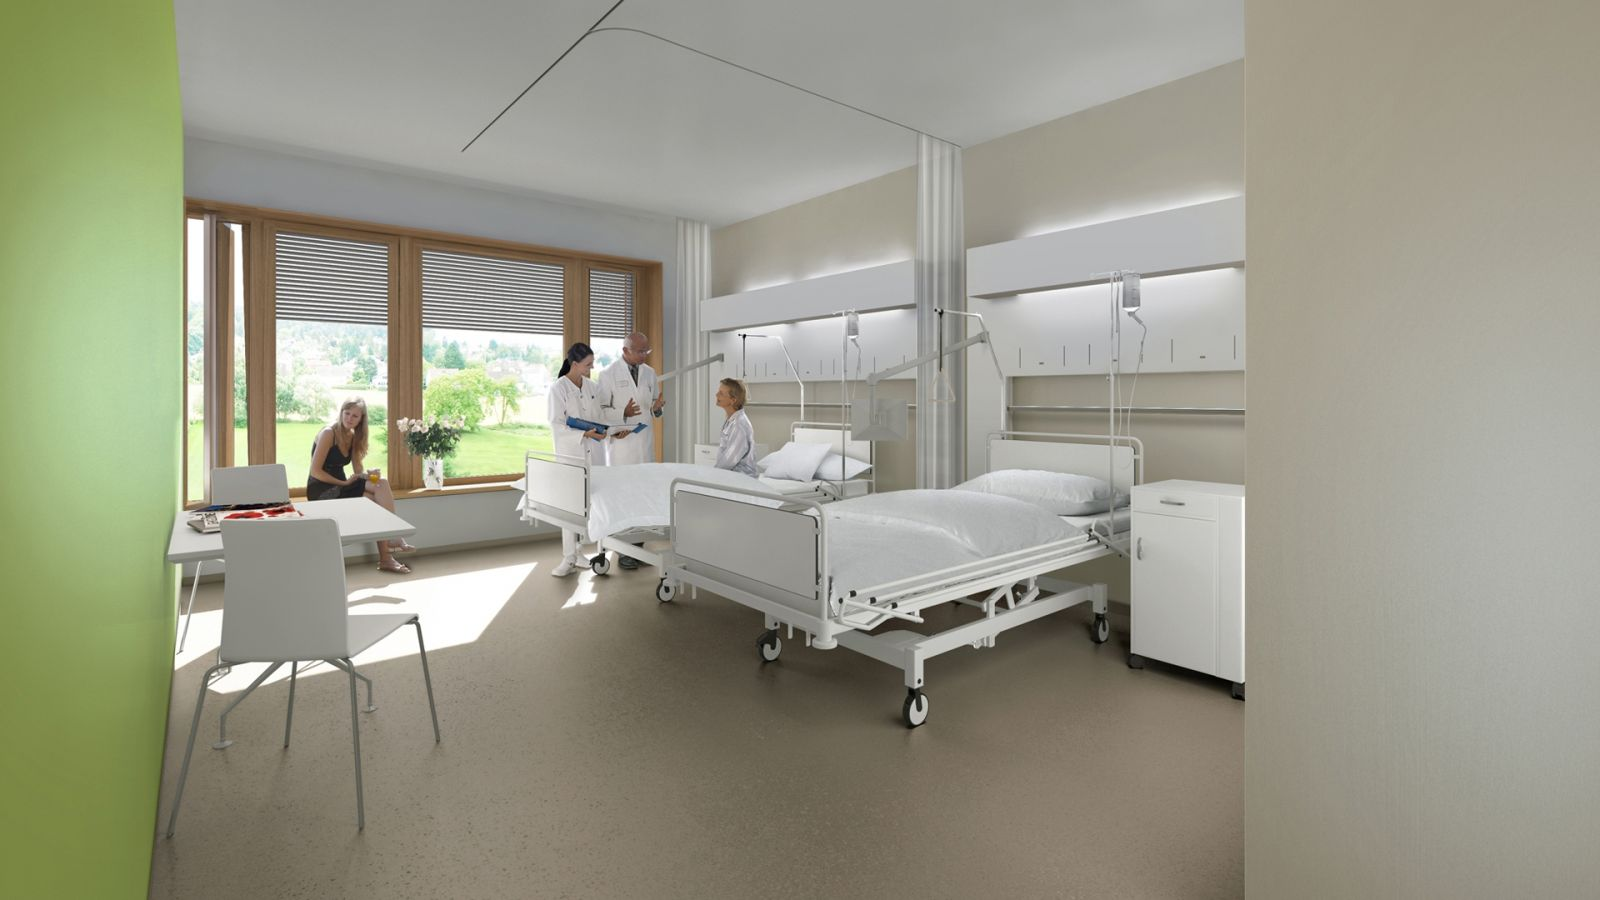 Decoration chambre hopital for Chambre image